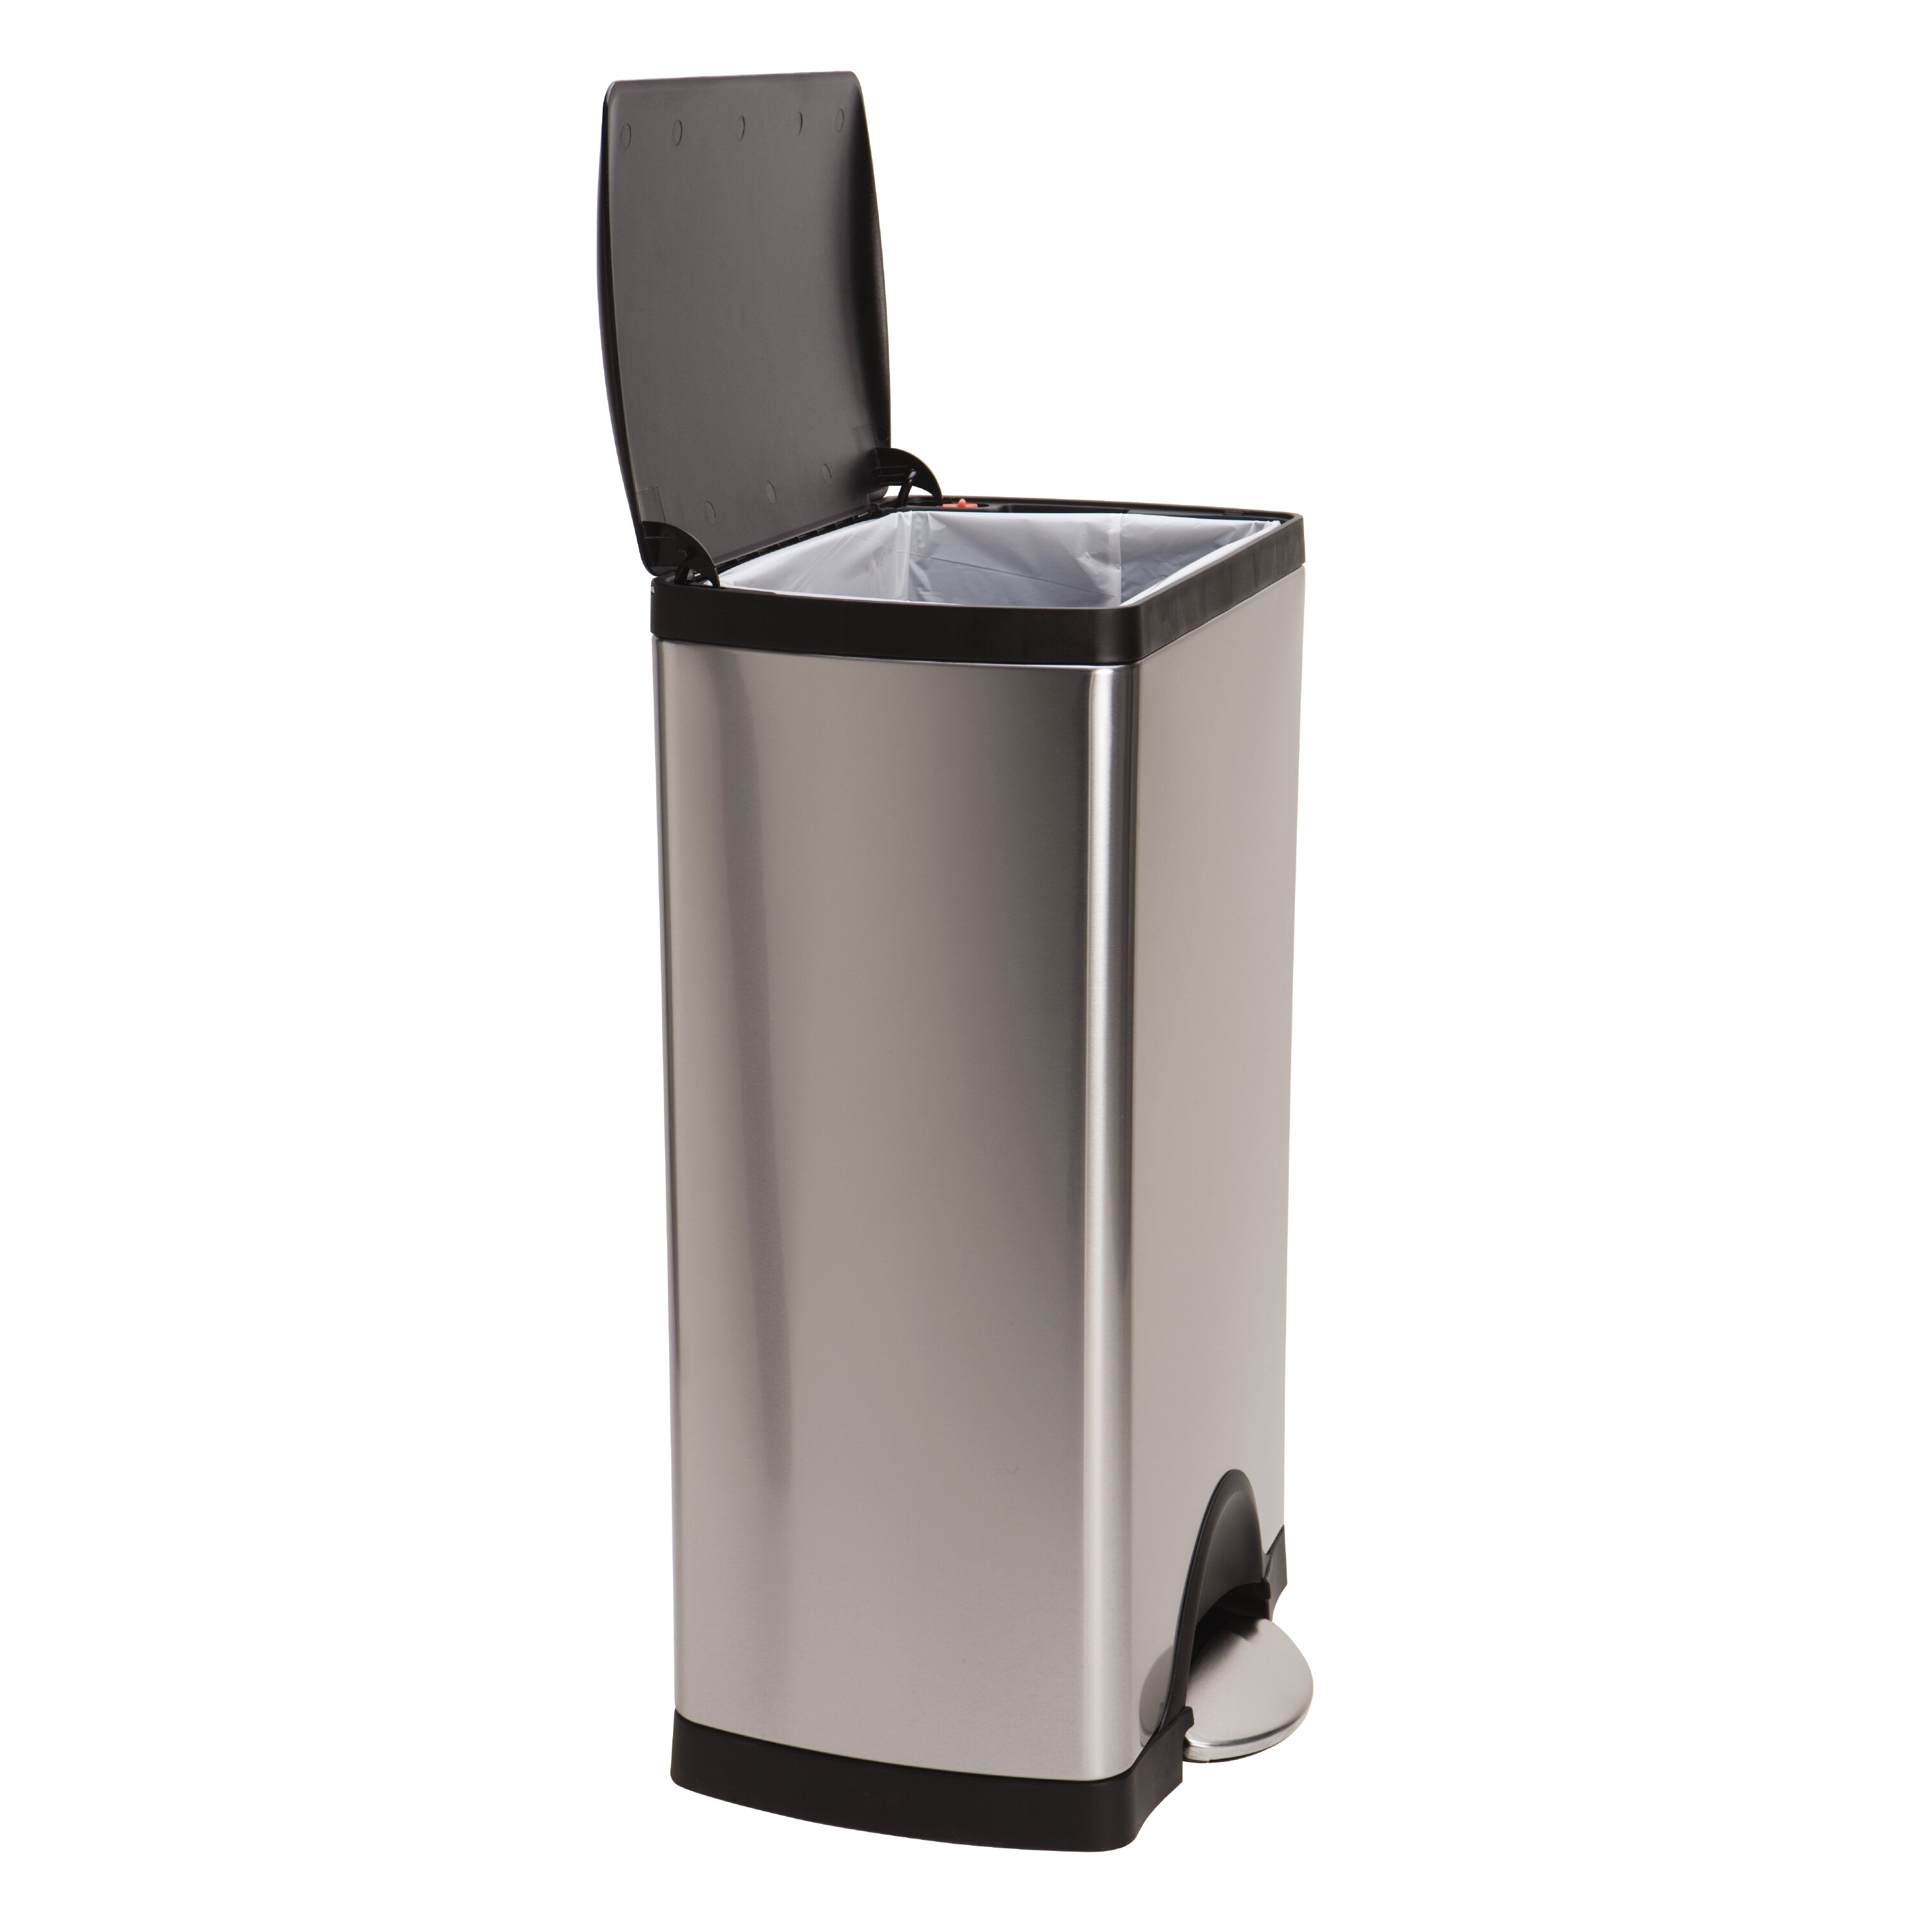 simplehuman 10 gal stainless steel trash can with liner reviews wayfair. Black Bedroom Furniture Sets. Home Design Ideas